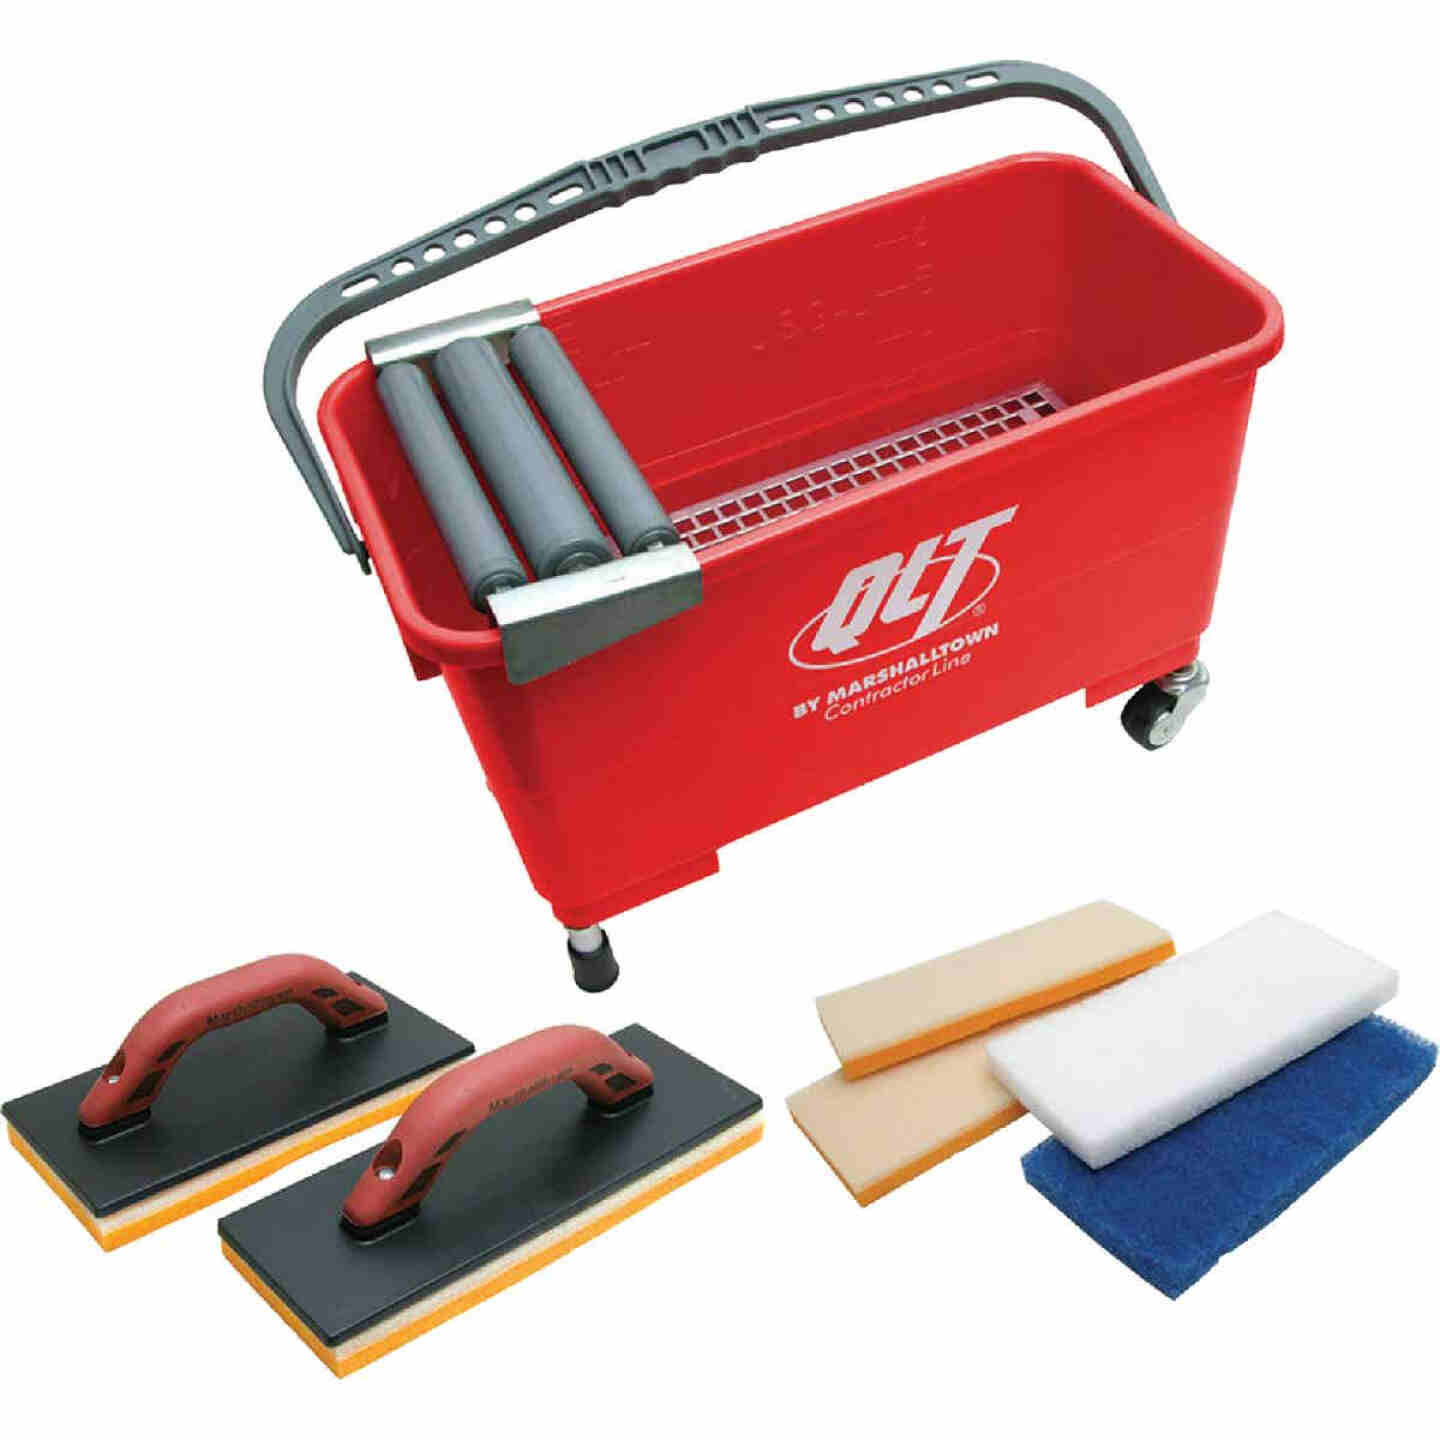 QLT Deluxe Grout Kit (6-Piece) Image 1